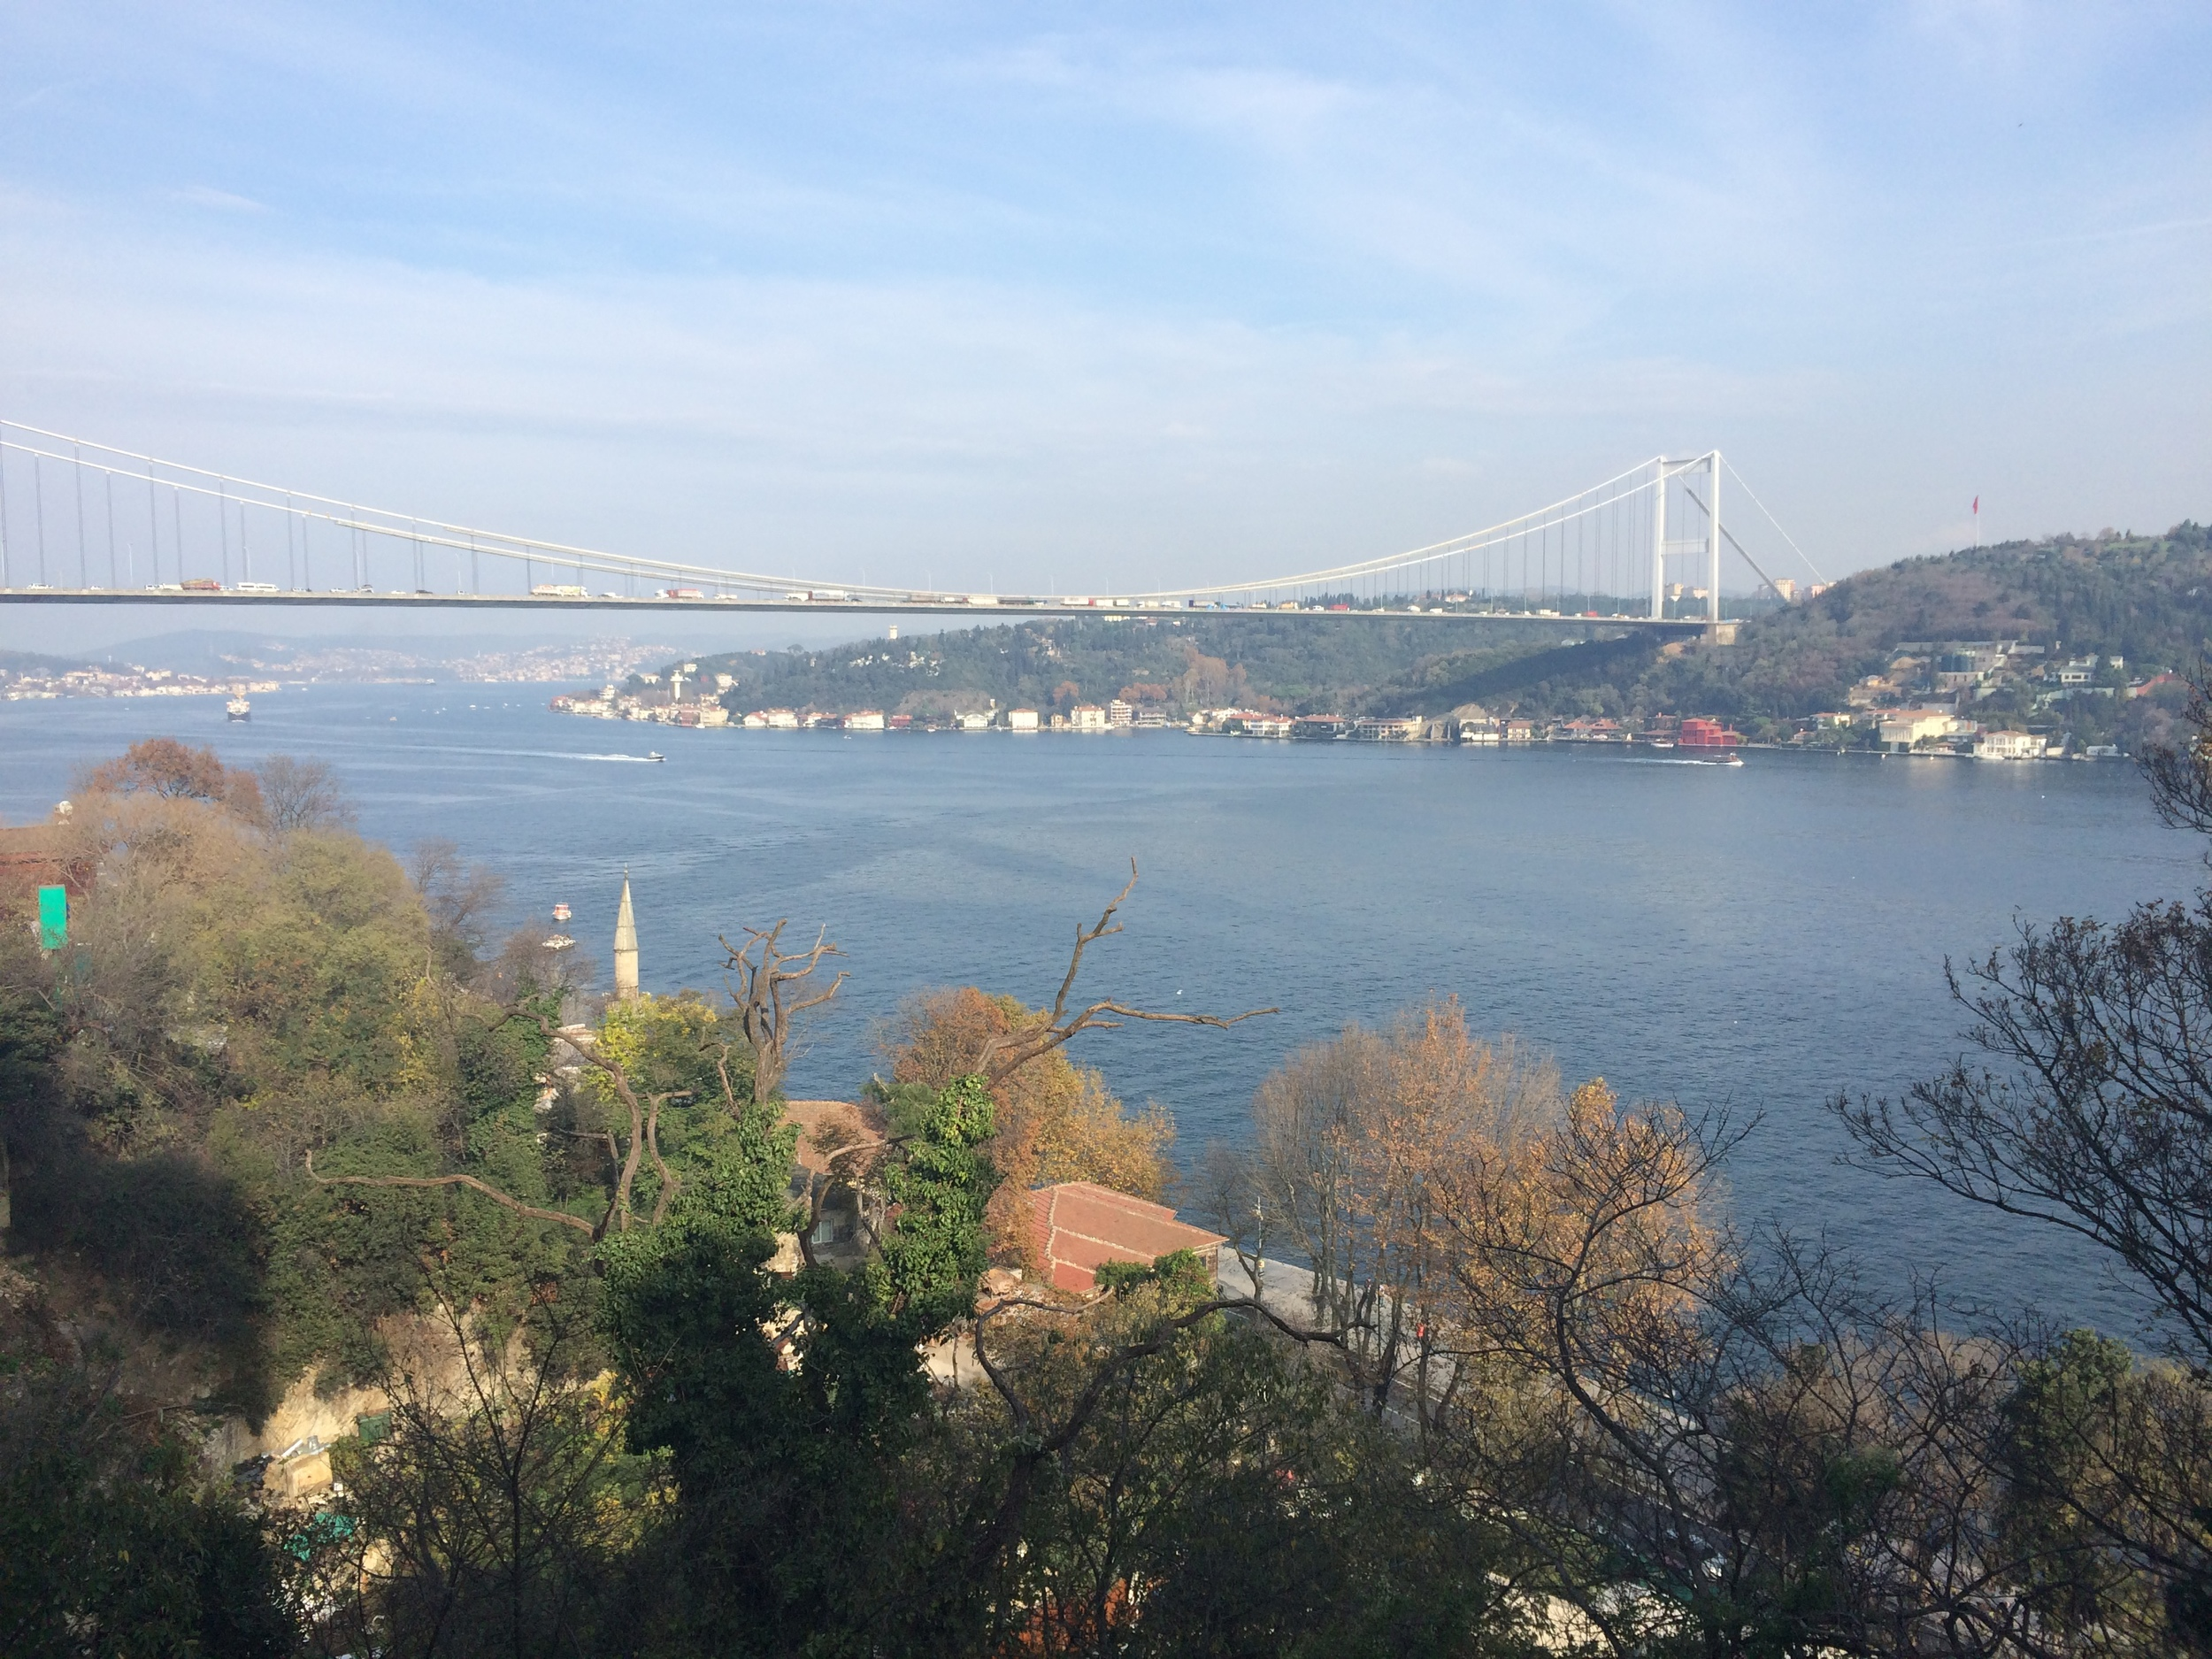 Up in the hills of Babek overlooking the Bosphorus Strait.